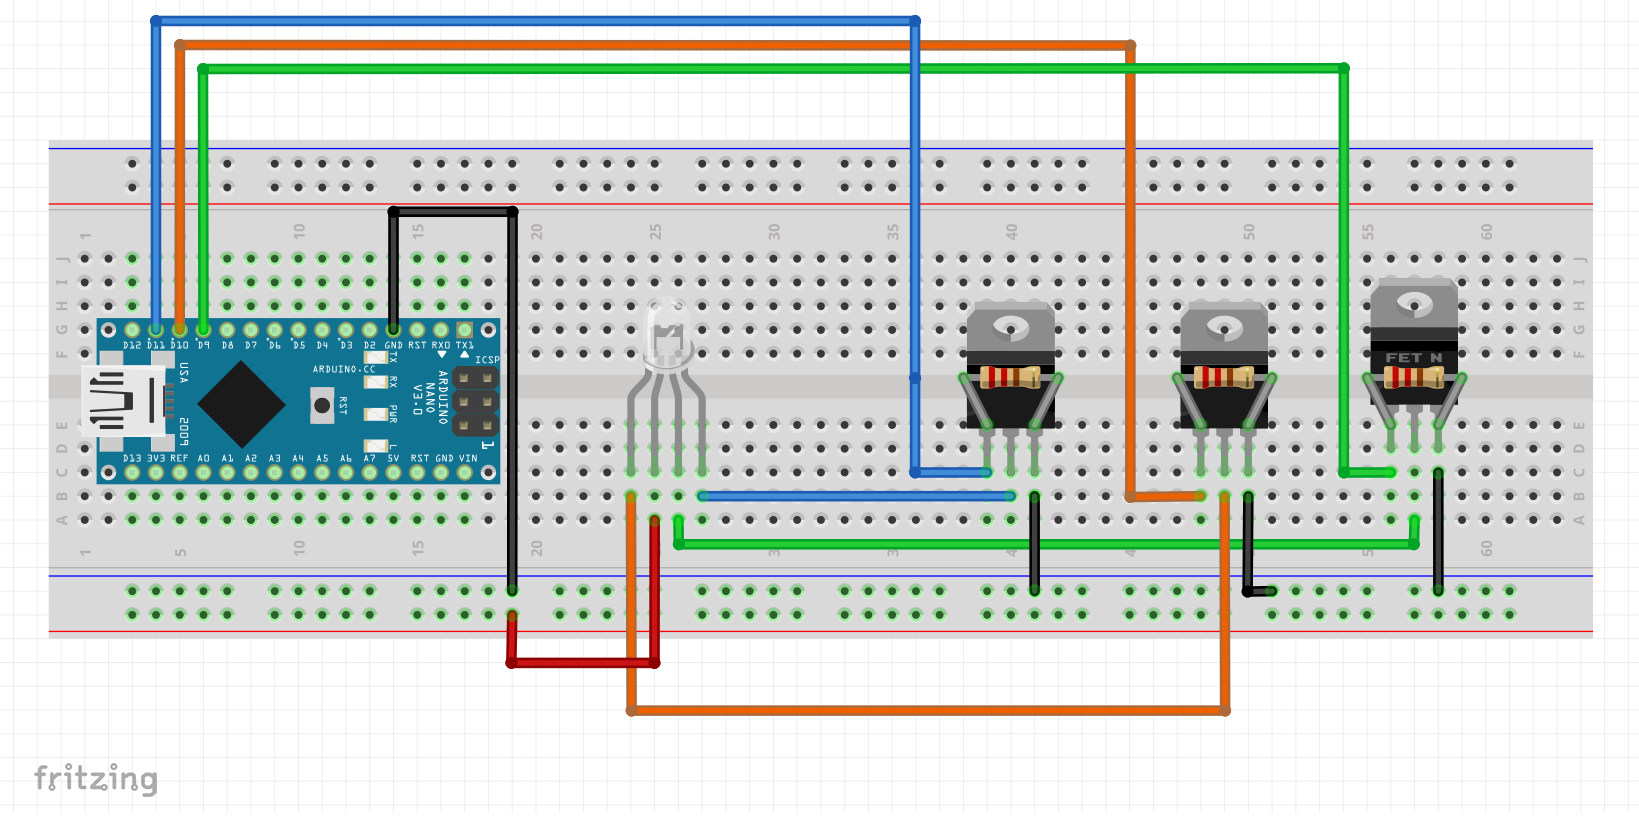 RGP_LED_Strip driving 3w leds with pwm on arduino? 120V LED Wiring Diagram at gsmx.co